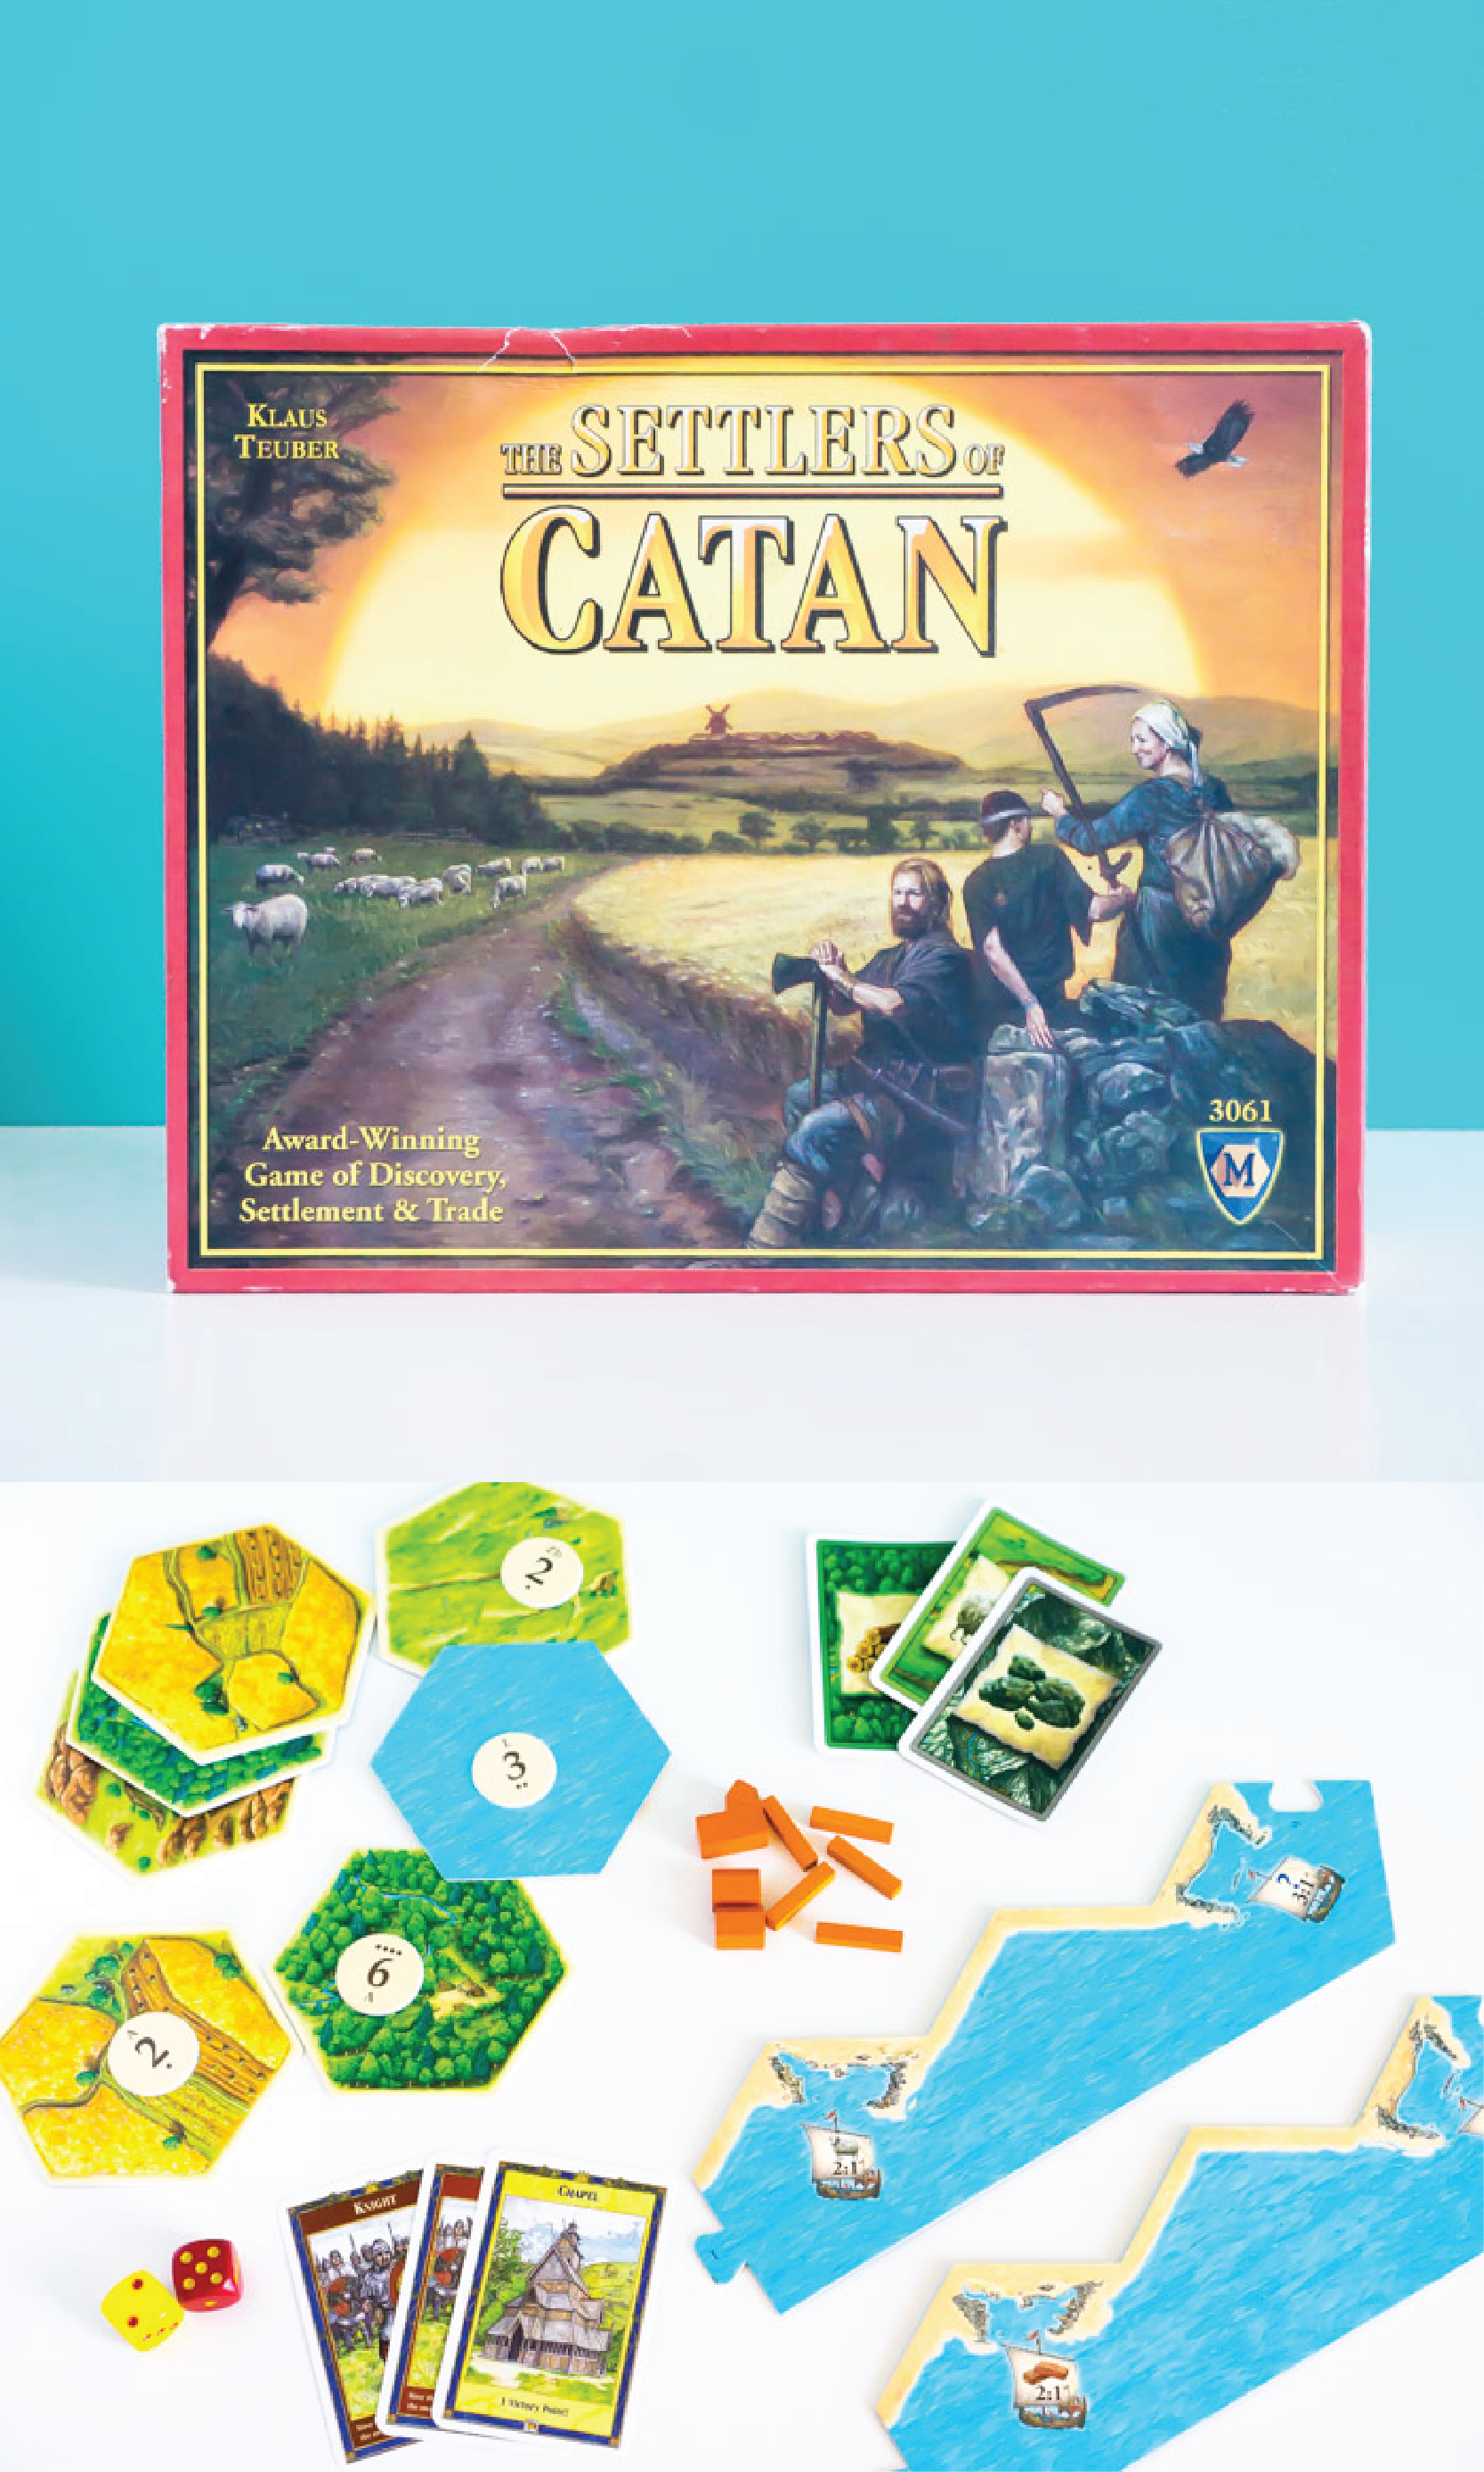 The Settlers of Catan board game is a classic